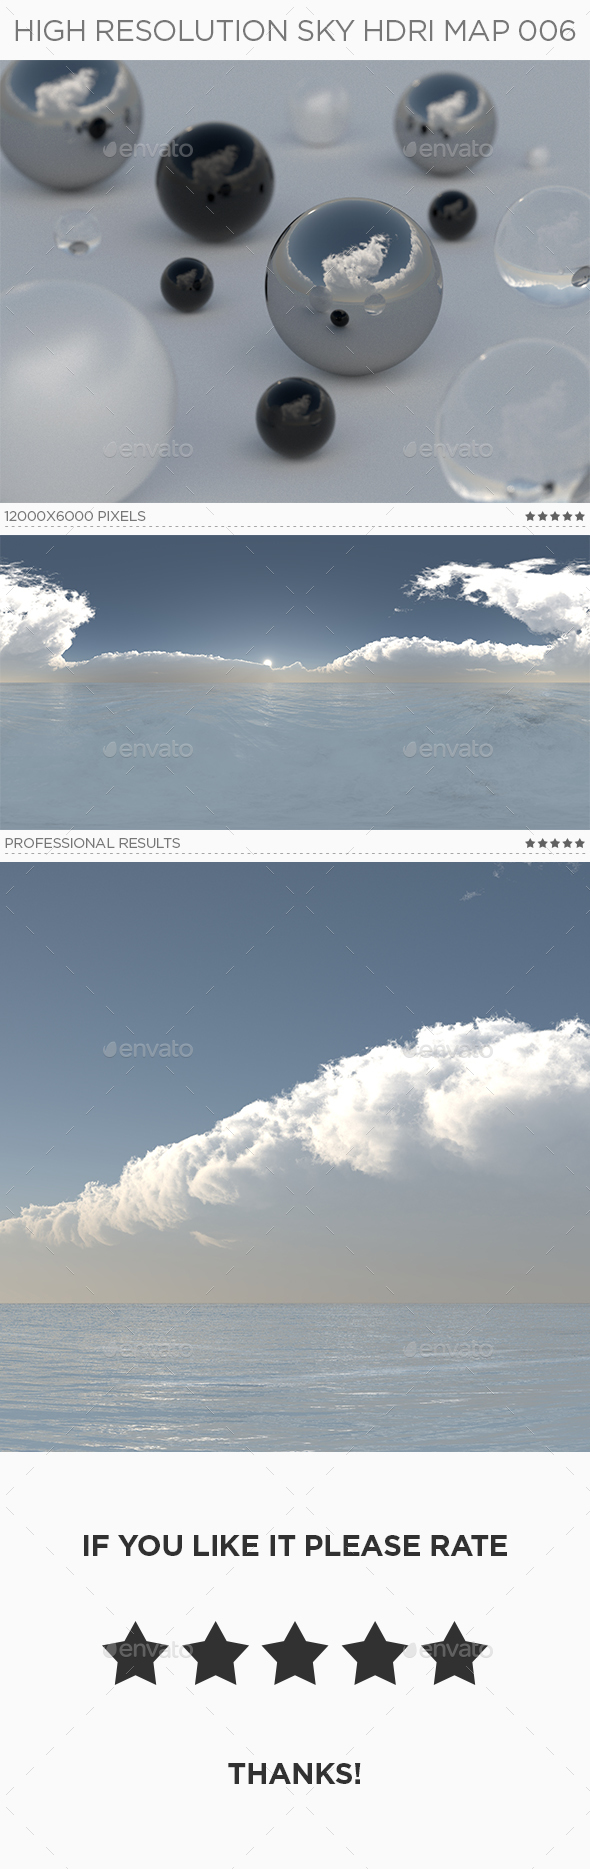 High Resolution sky HDRi Map 006 - 3DOcean Item for Sale